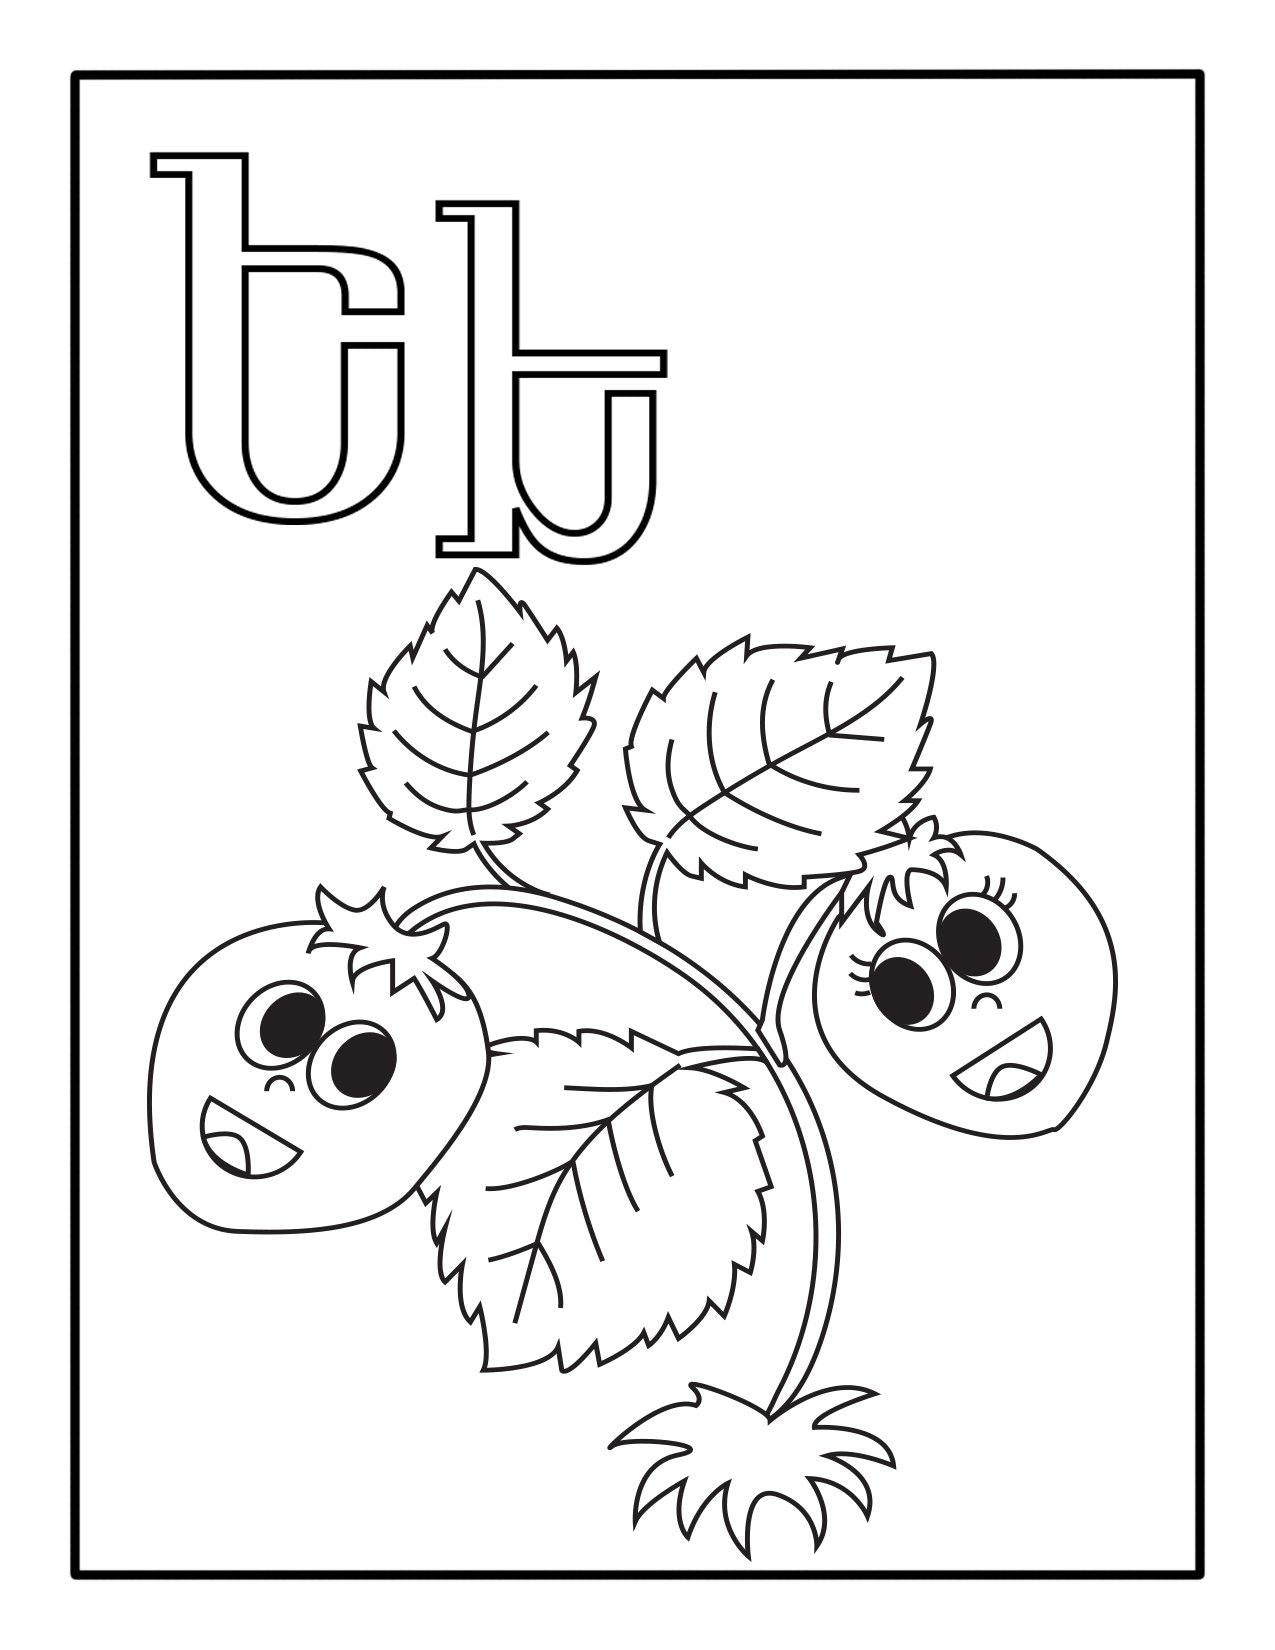 armenia coloring pages - photo#41